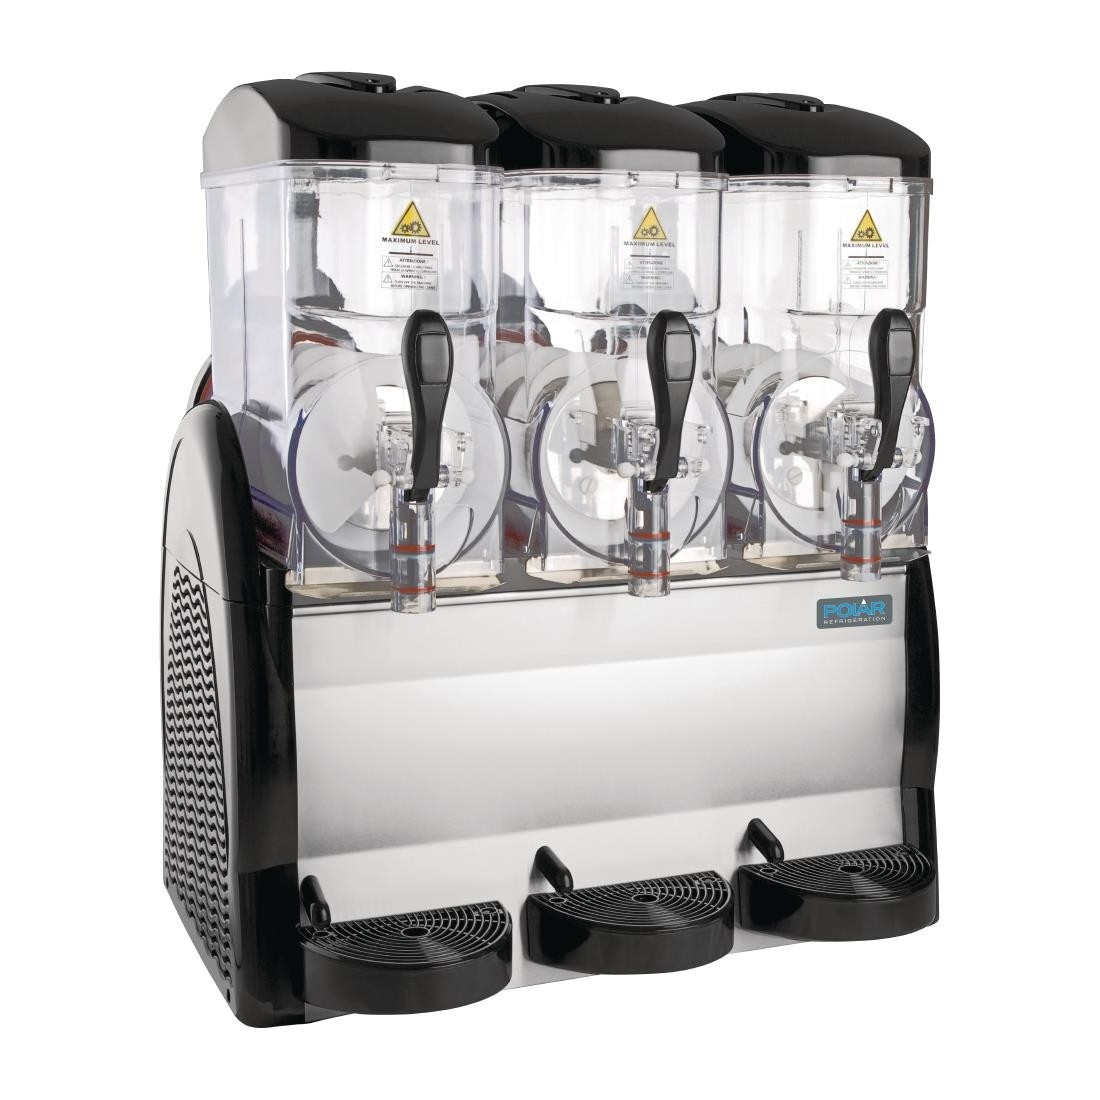 Polar DB843 G-Series Slush Machine